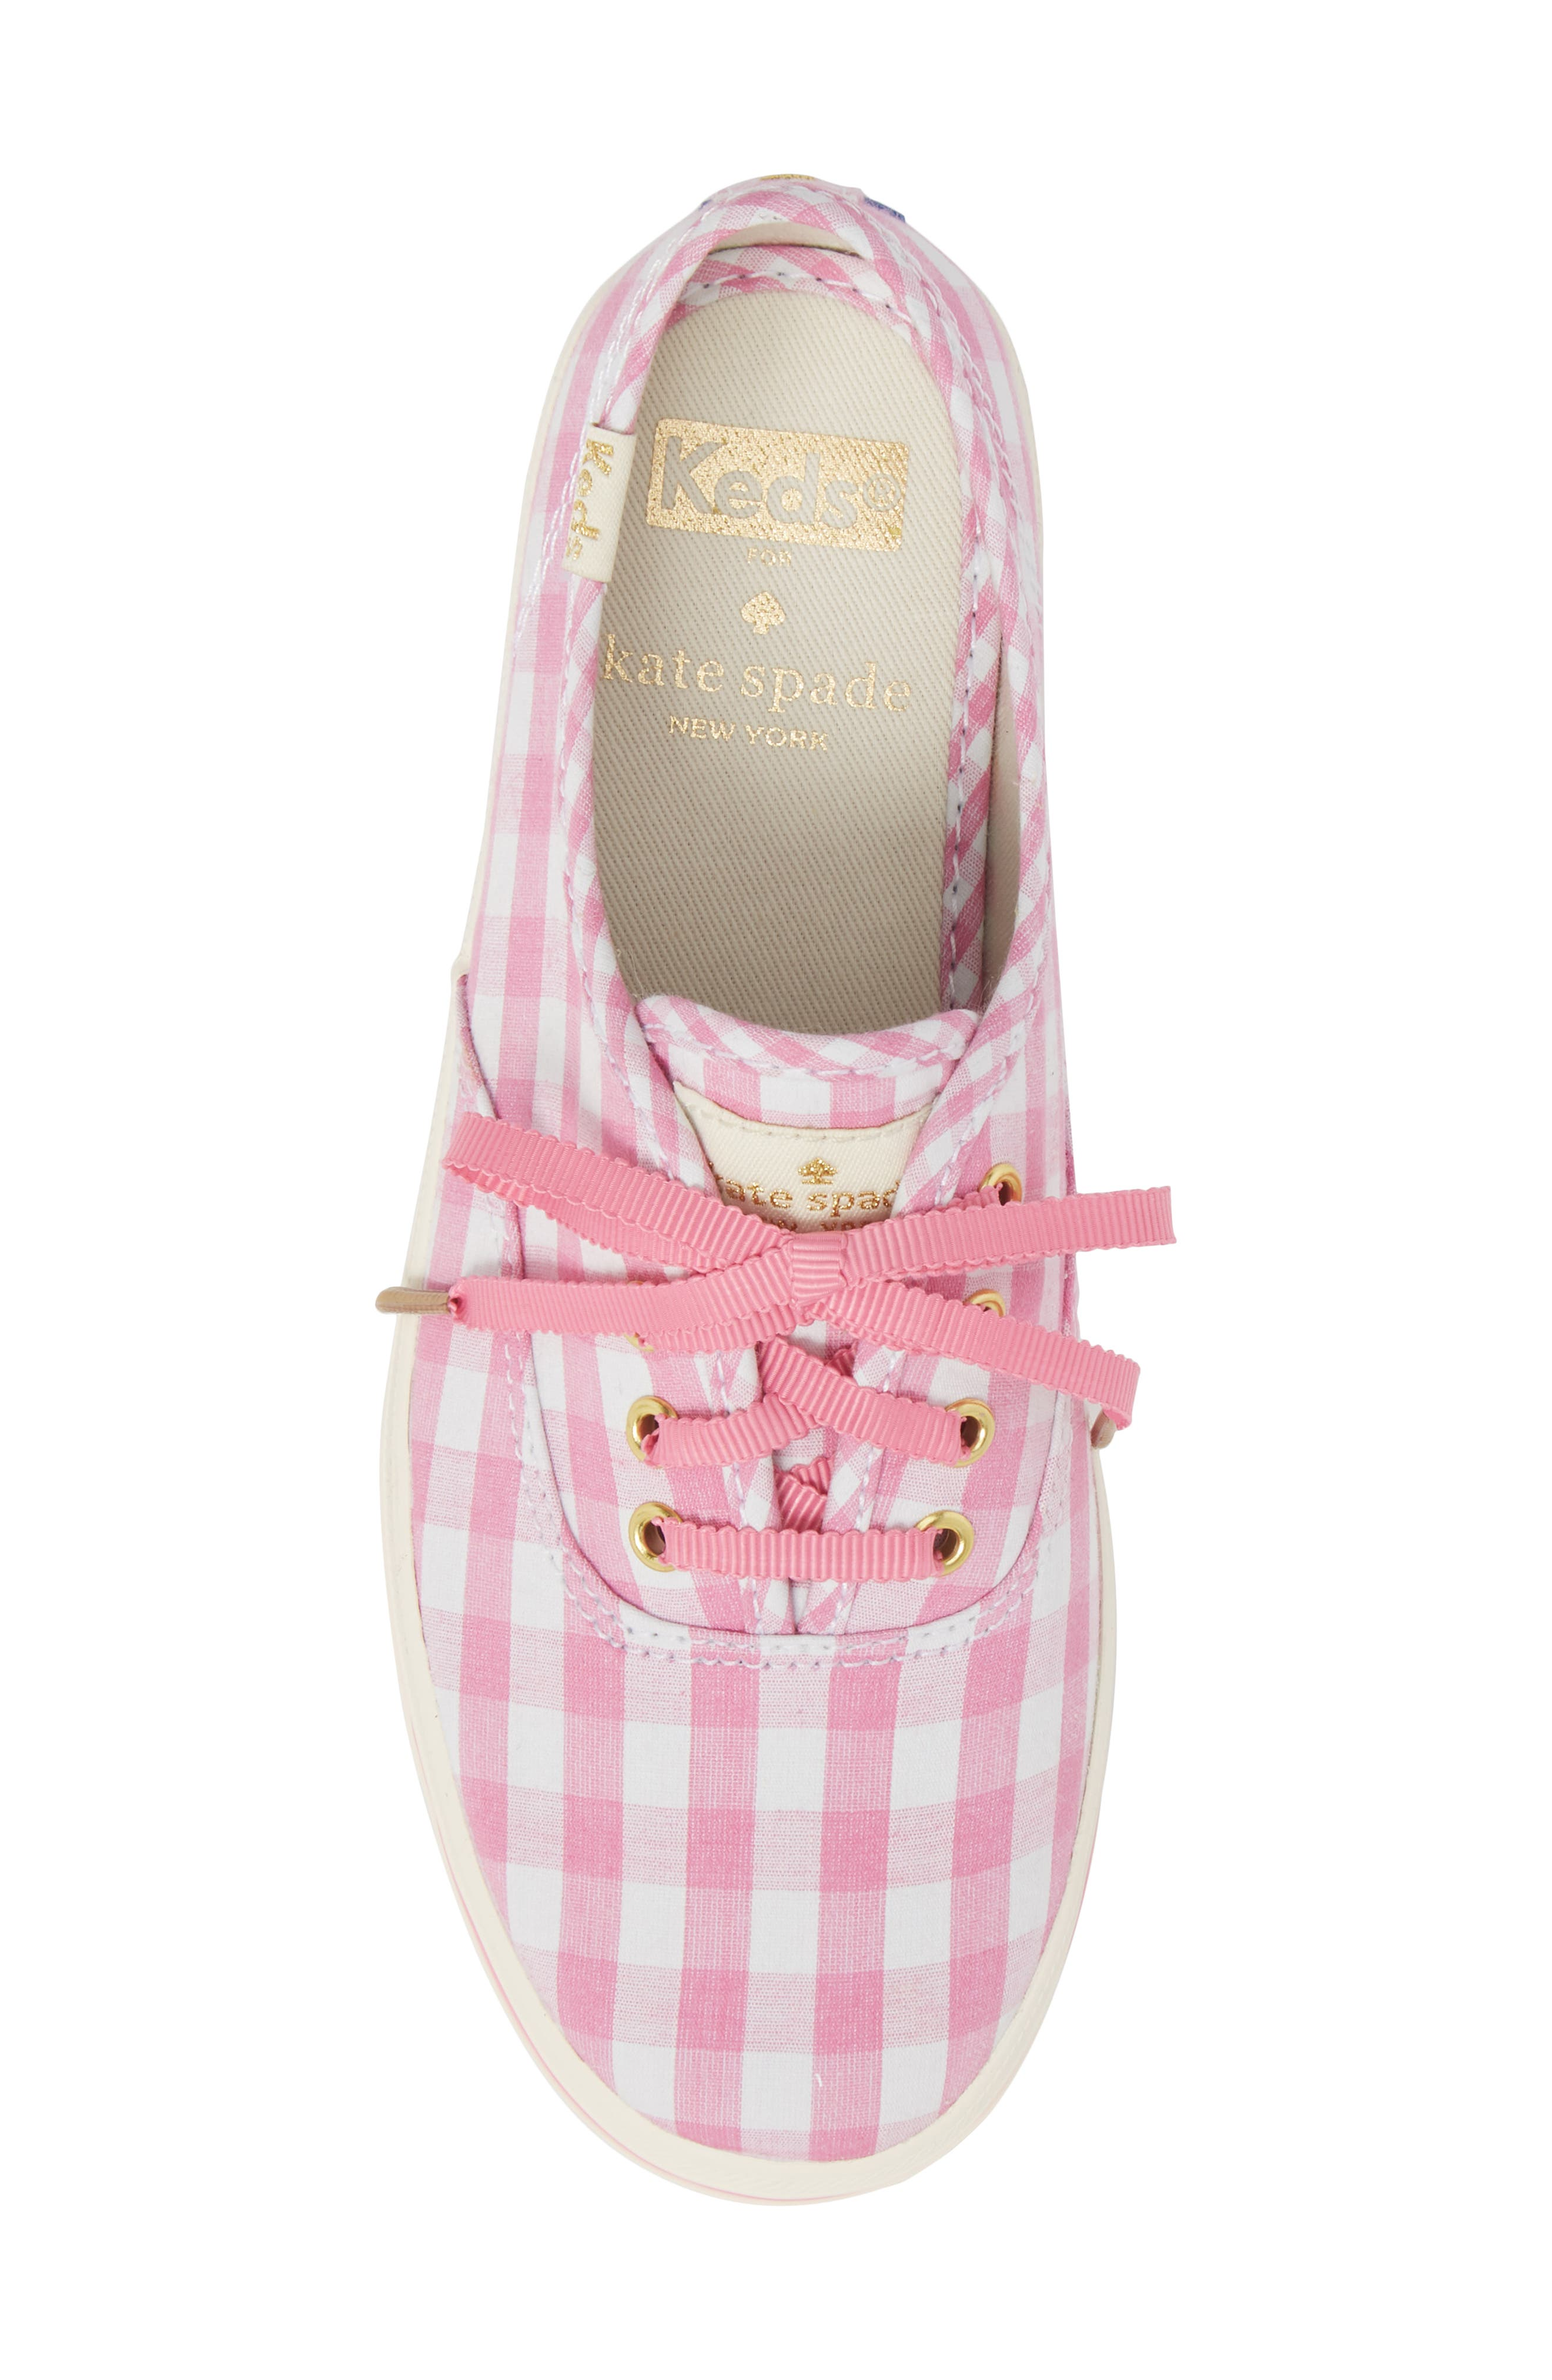 x kate spade new york champion gingham lace-up shoe,                             Alternate thumbnail 5, color,                             Pink Gingham